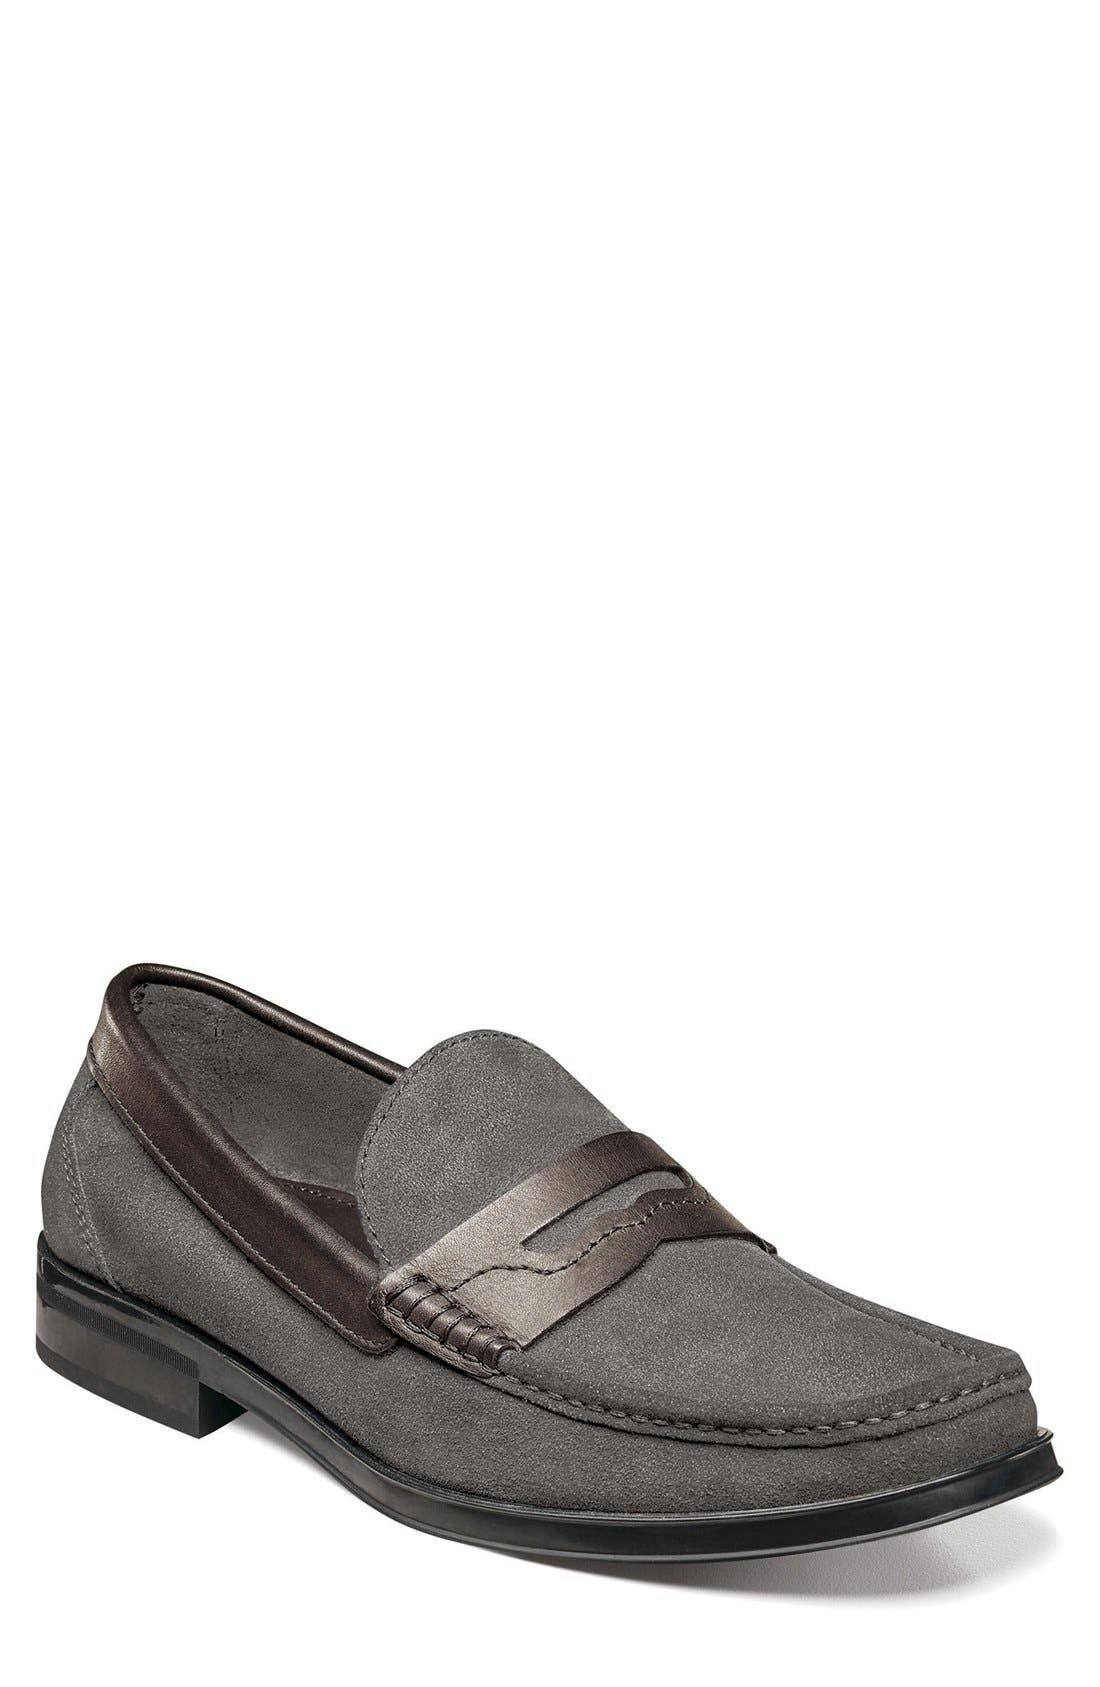 Westbrook Penny Loafer,                             Alternate thumbnail 17, color,